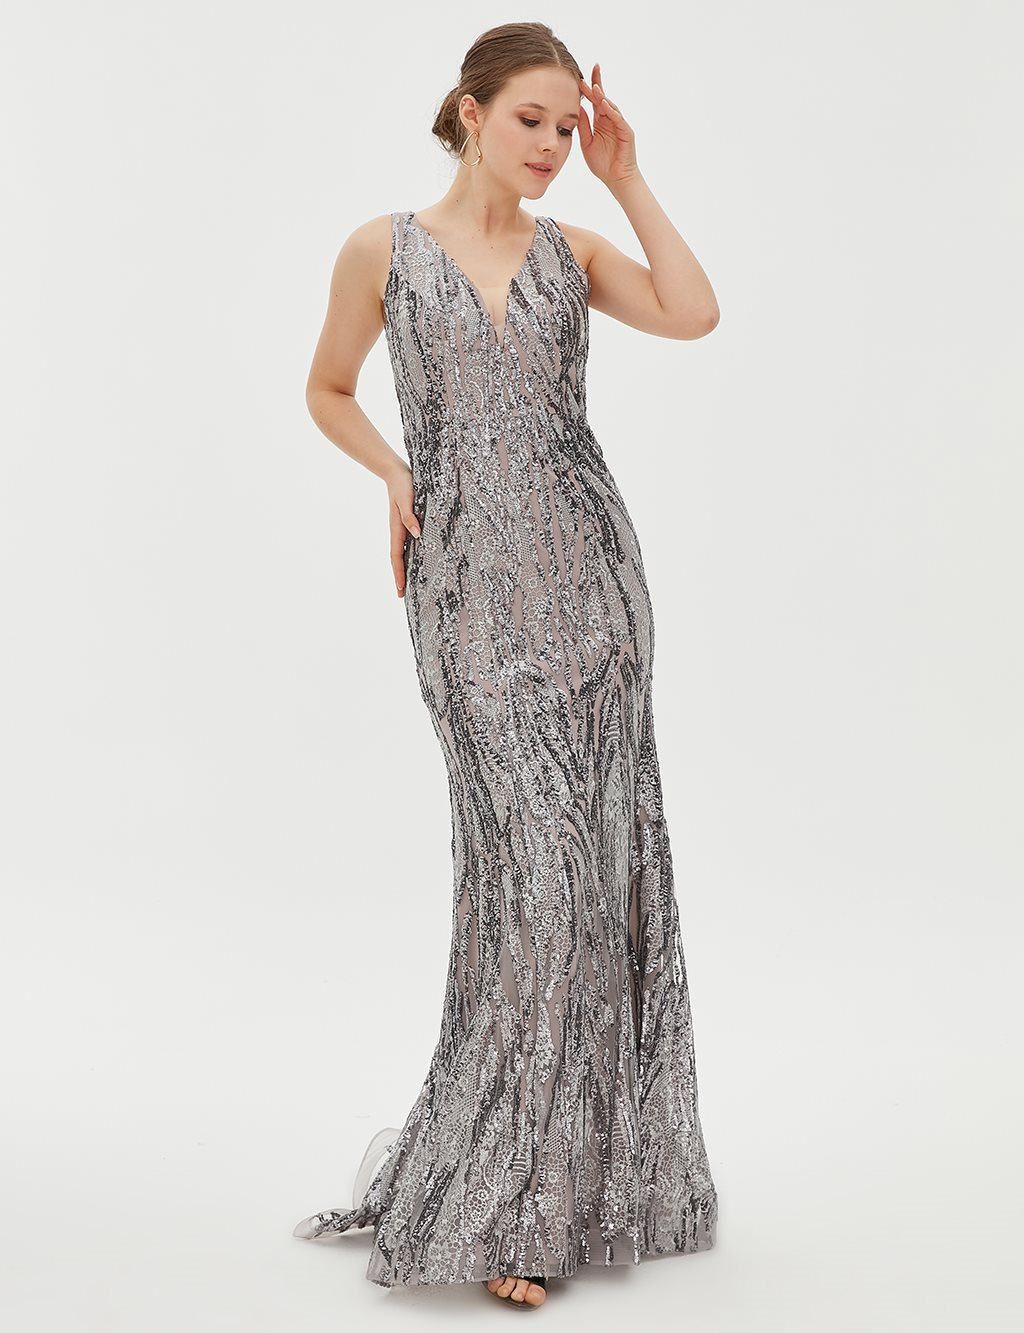 TIARA Sequin Detailed Evening Gown B20 26141 Grey